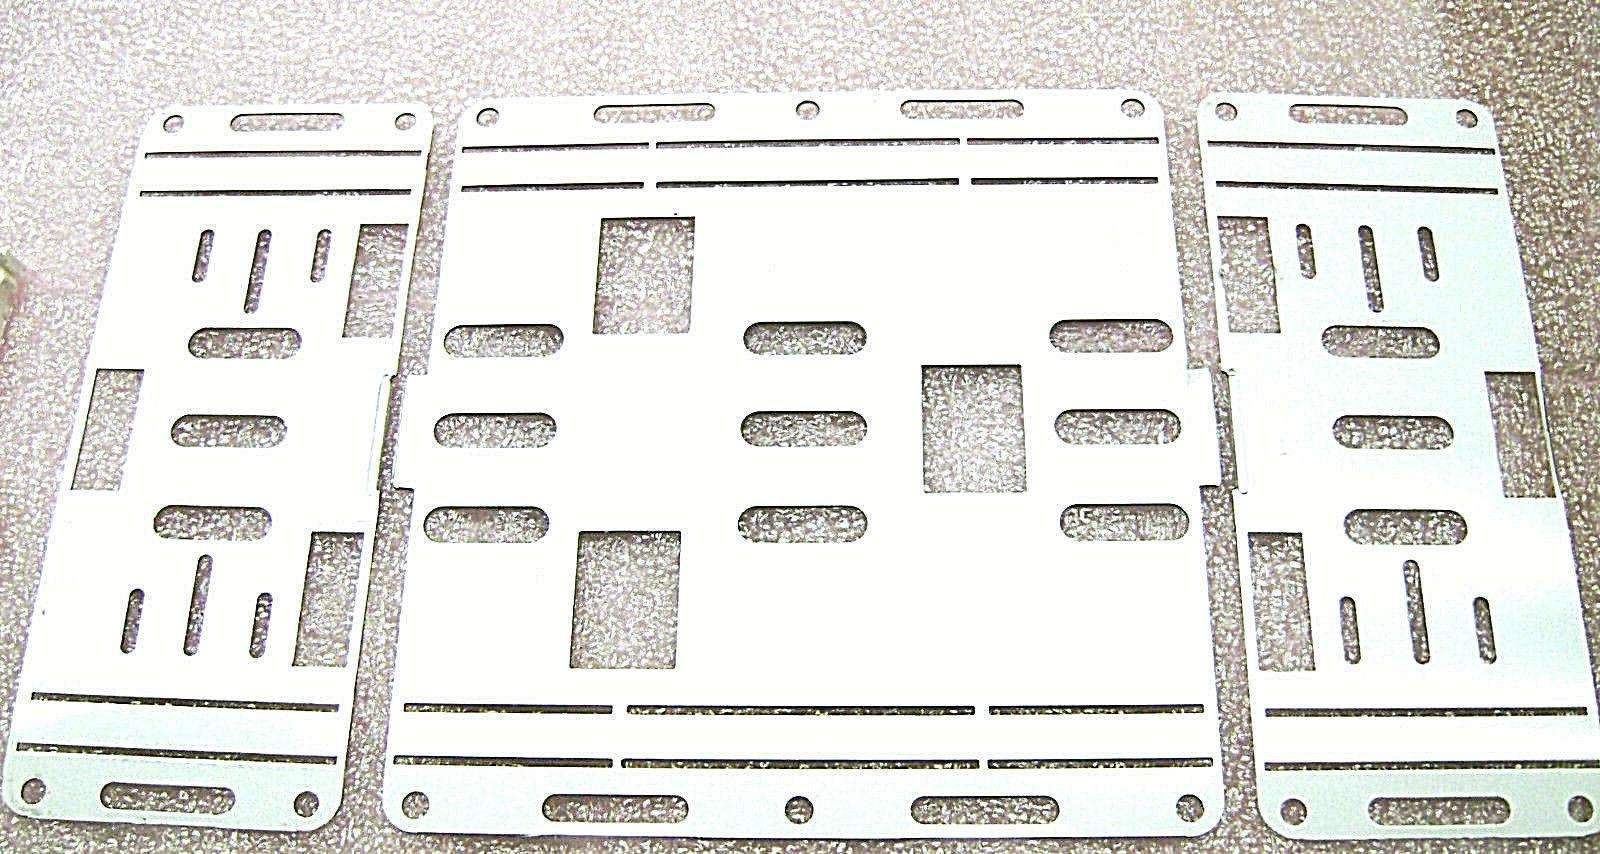 20 Plates for 2 T12 Strip 8' T8 4 LED